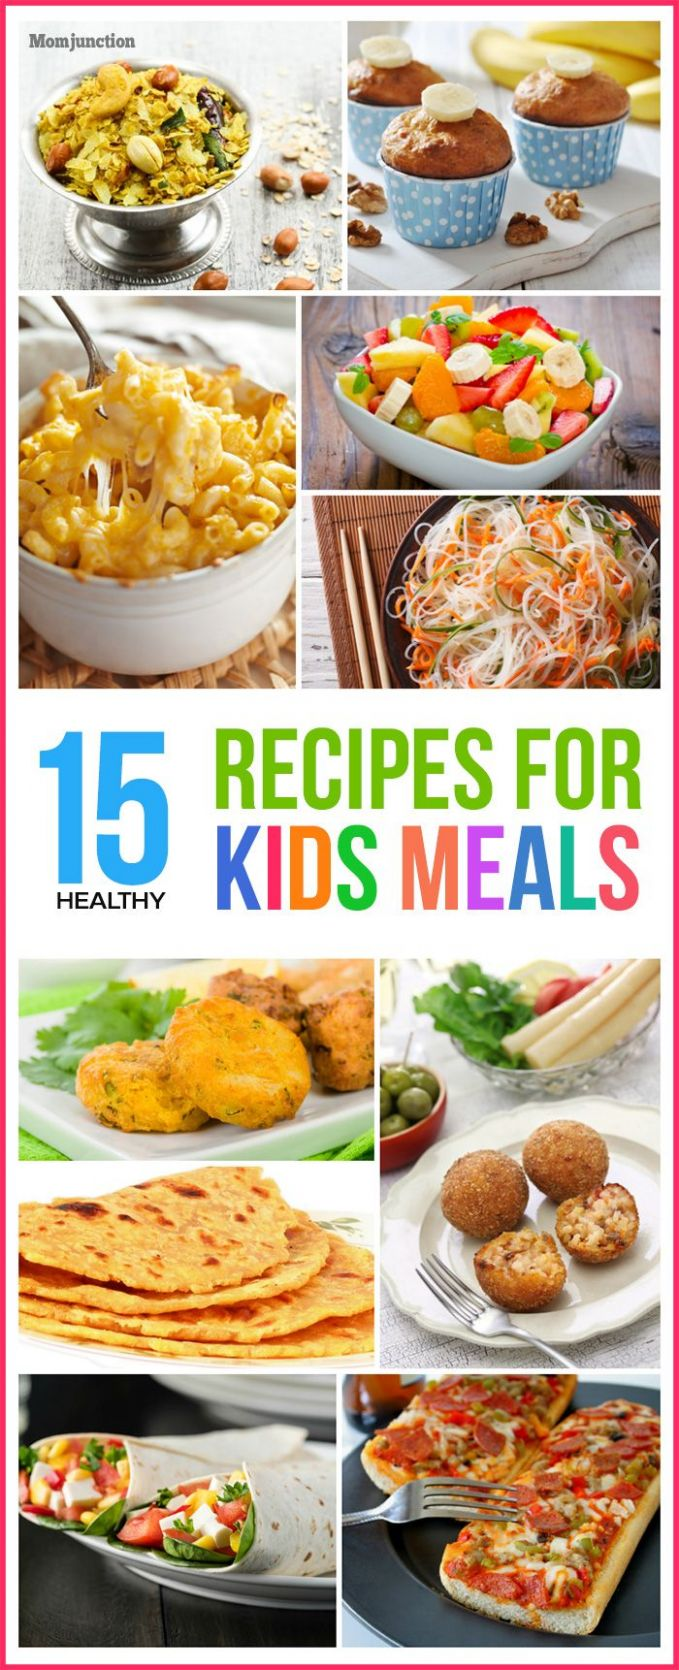 Top 12 Healthy Recipes For Kids' Meals | Kid friendly meals ...